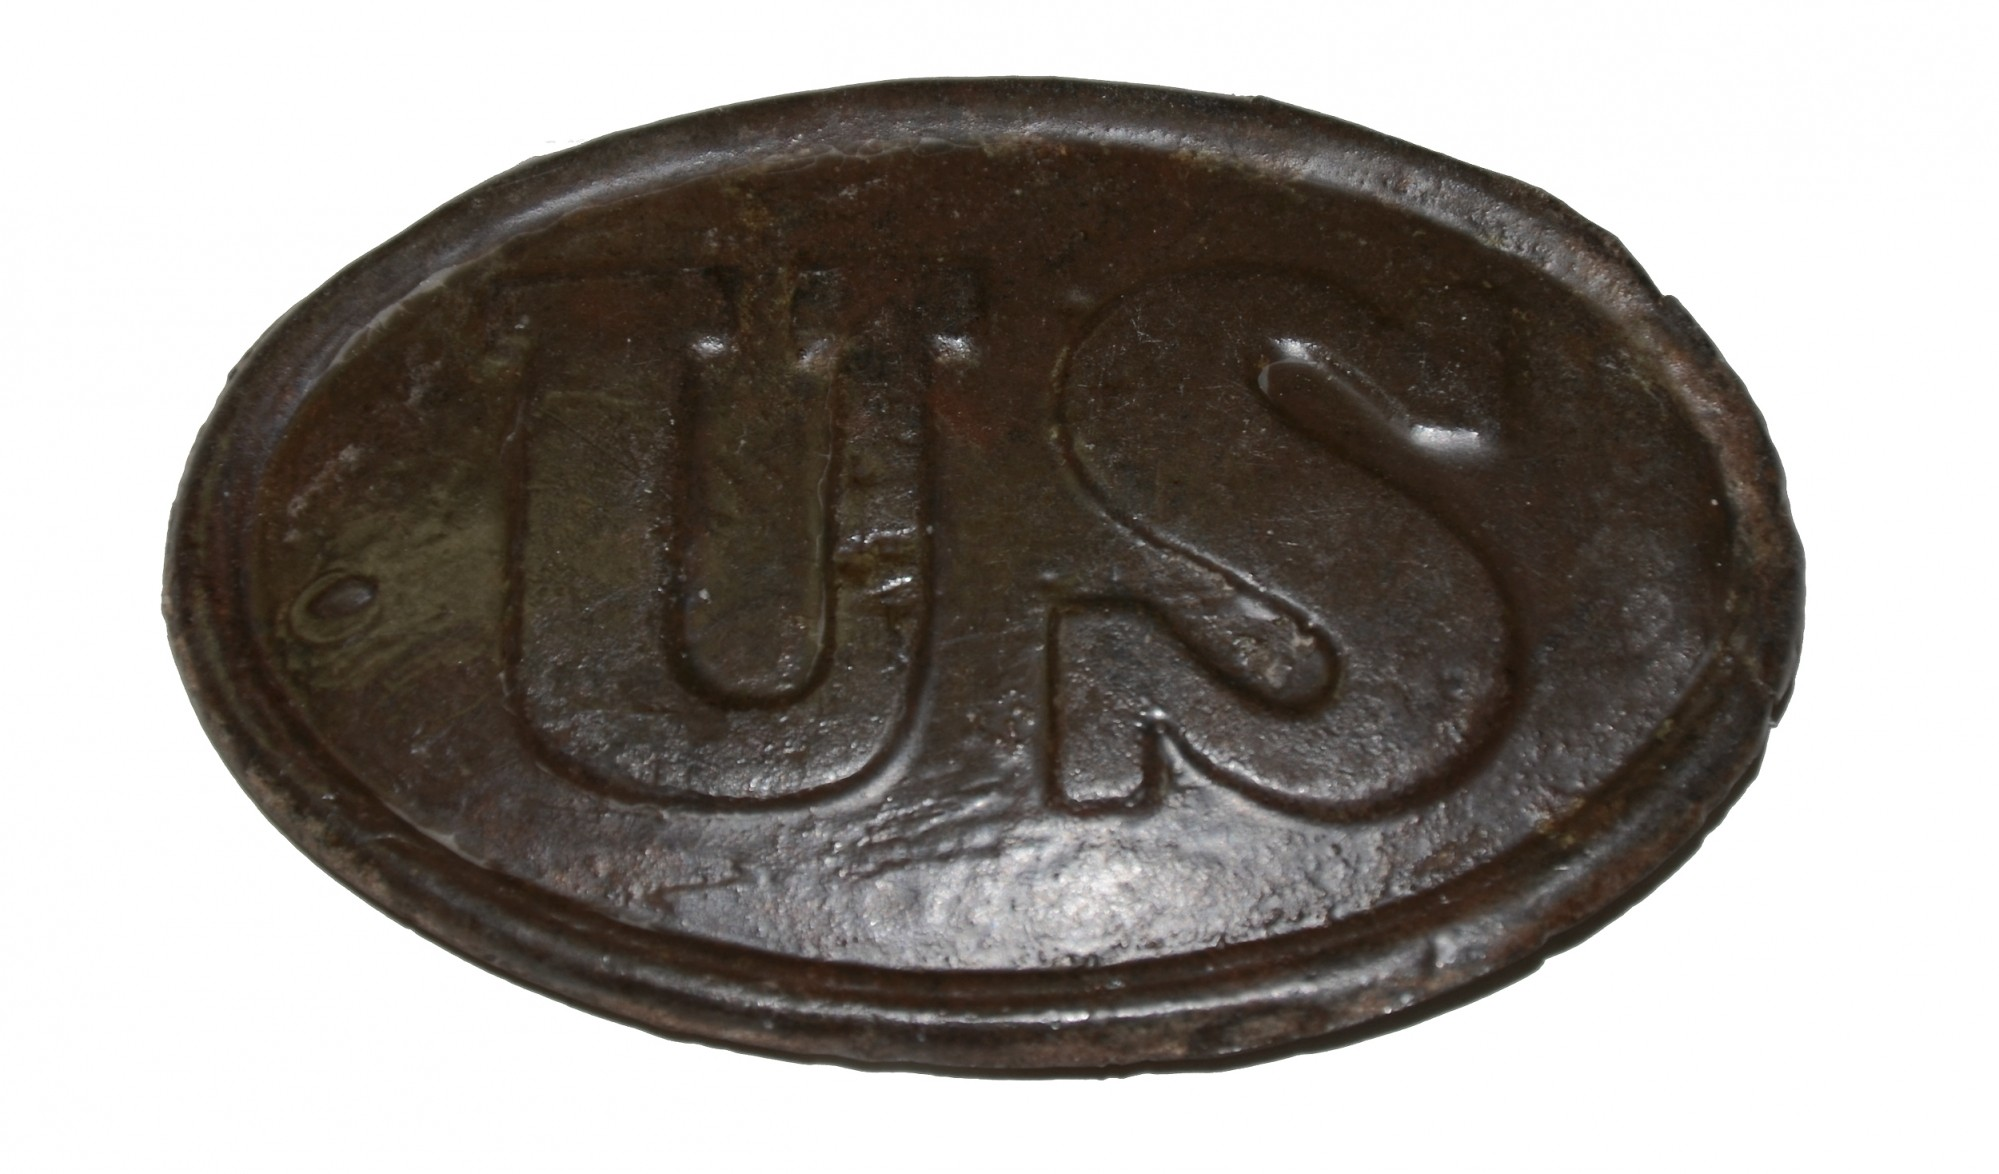 US PATTERN 1839 BELT PLATE FROM THE ROSENSTEEL FAMILY COLLECTION